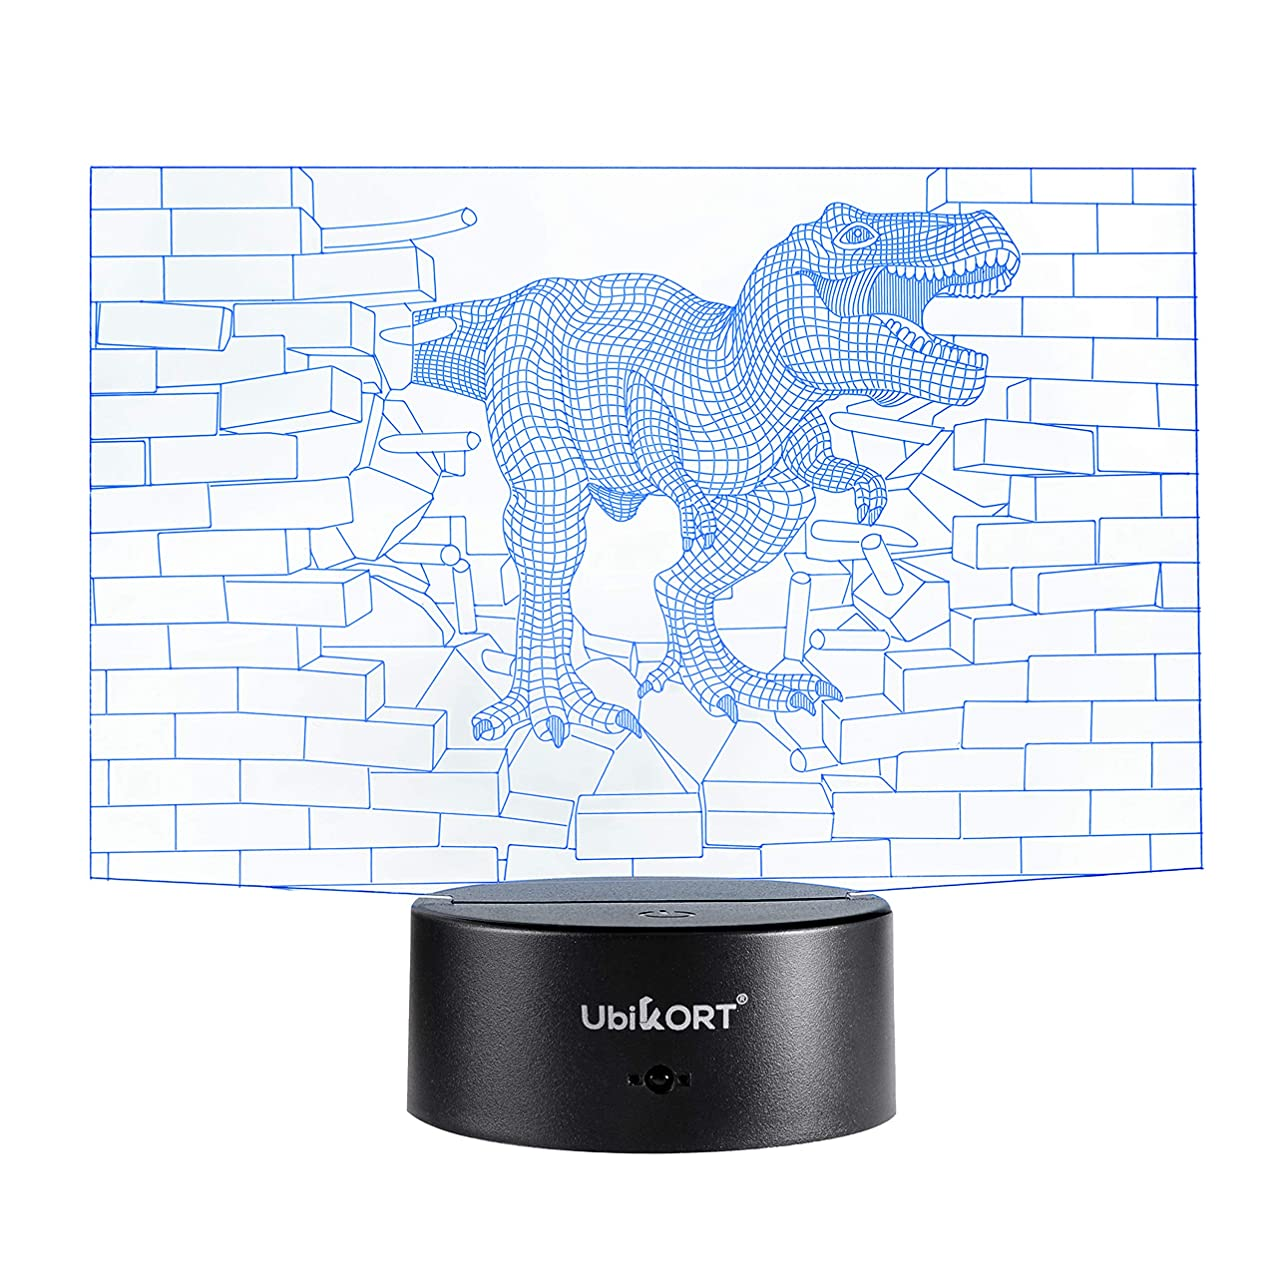 UbiKORT Dinosaur Night Light for Kids, 3D Dinosaur lamp for Bedroom Decor and Great Birthday Gift, T-Rex Dinosaur Wall, 3D LED Illusion Lamp with 7 Colors Mode Smart Switch, Remote Control, USB Charge